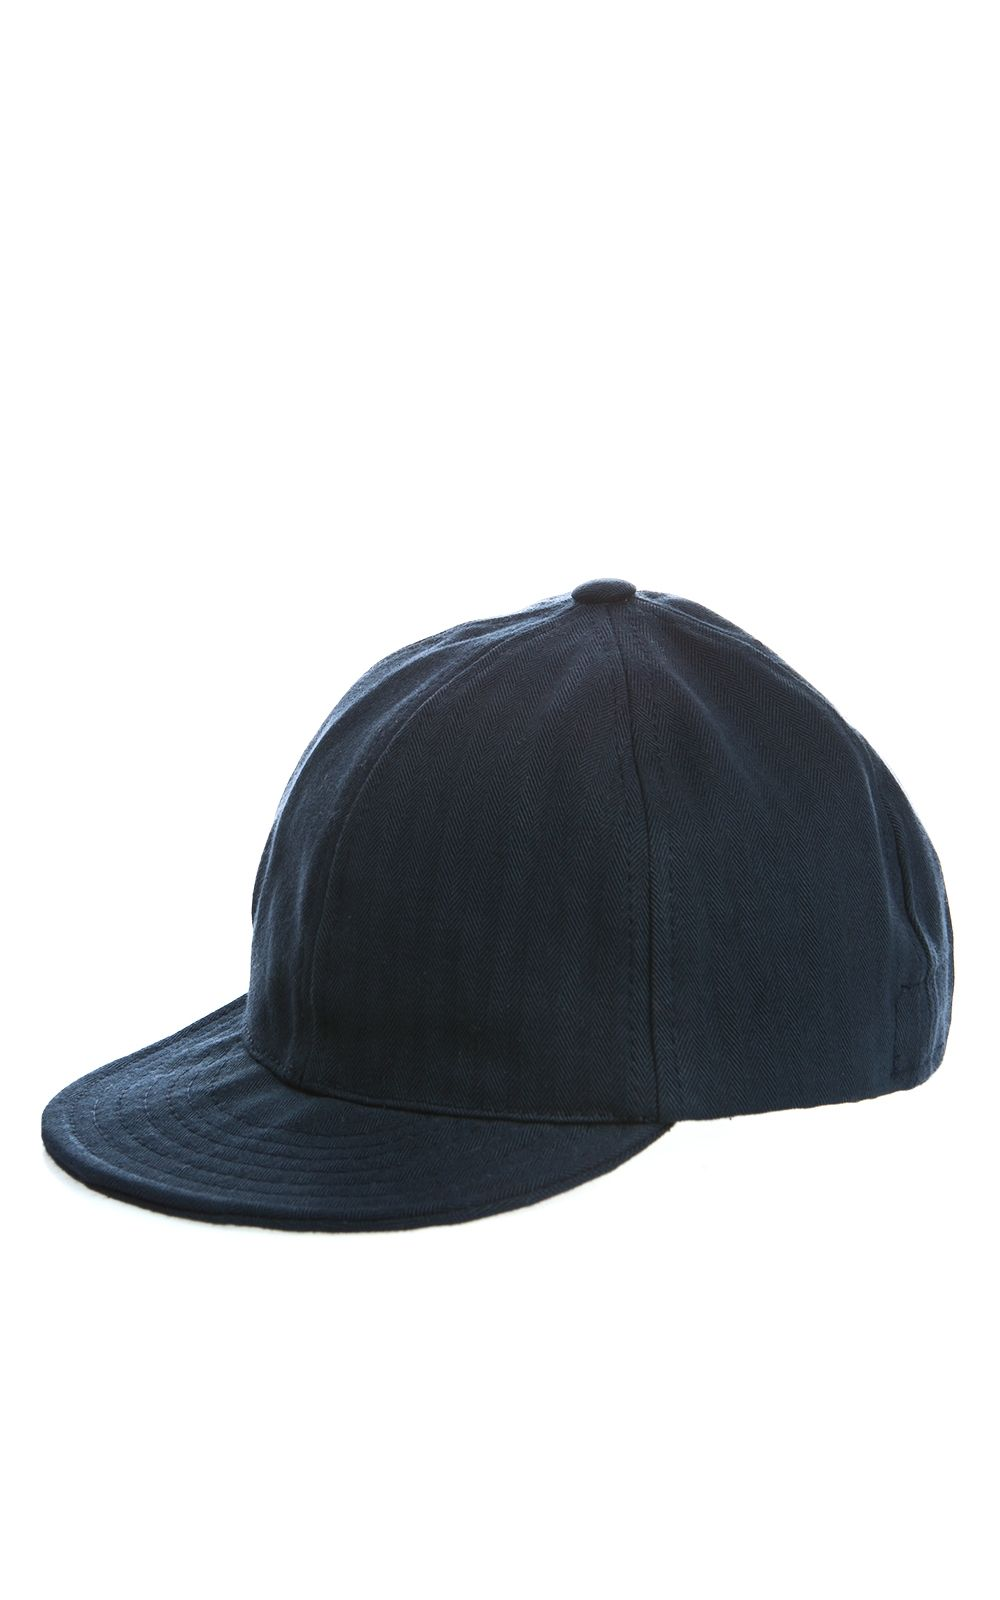 6a1d7fb4 Knickerbocker Mfg. Co. A3 Mechanic Cap Navy | Cap / Hat | Hats, Cap ...